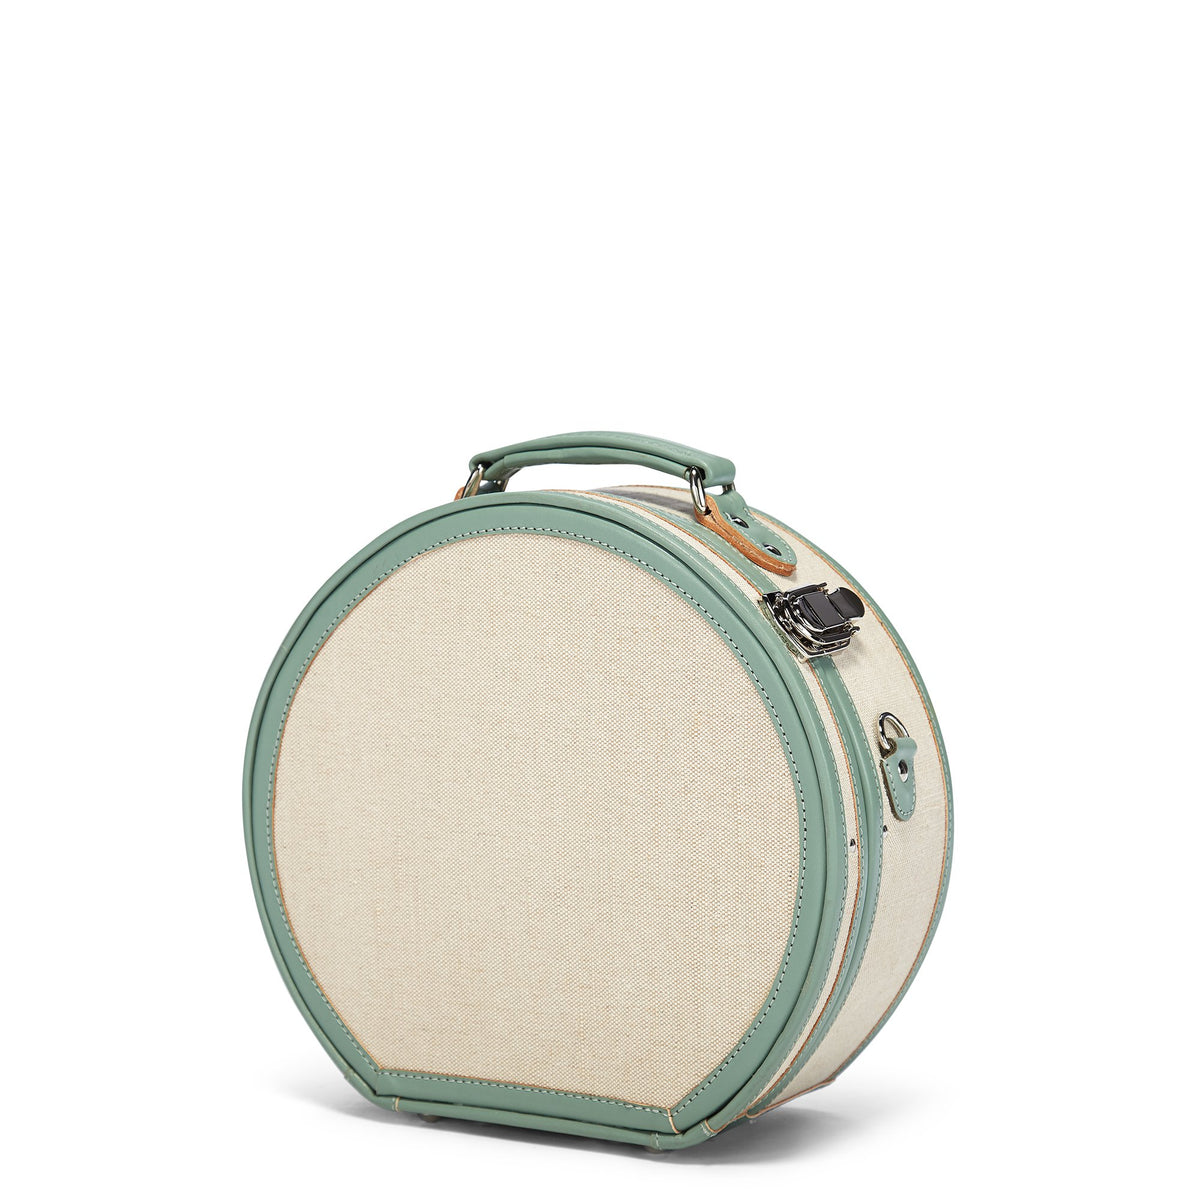 The Editor Hatbox Small in Seagreen - Hat Box Luggage - Exterior Front